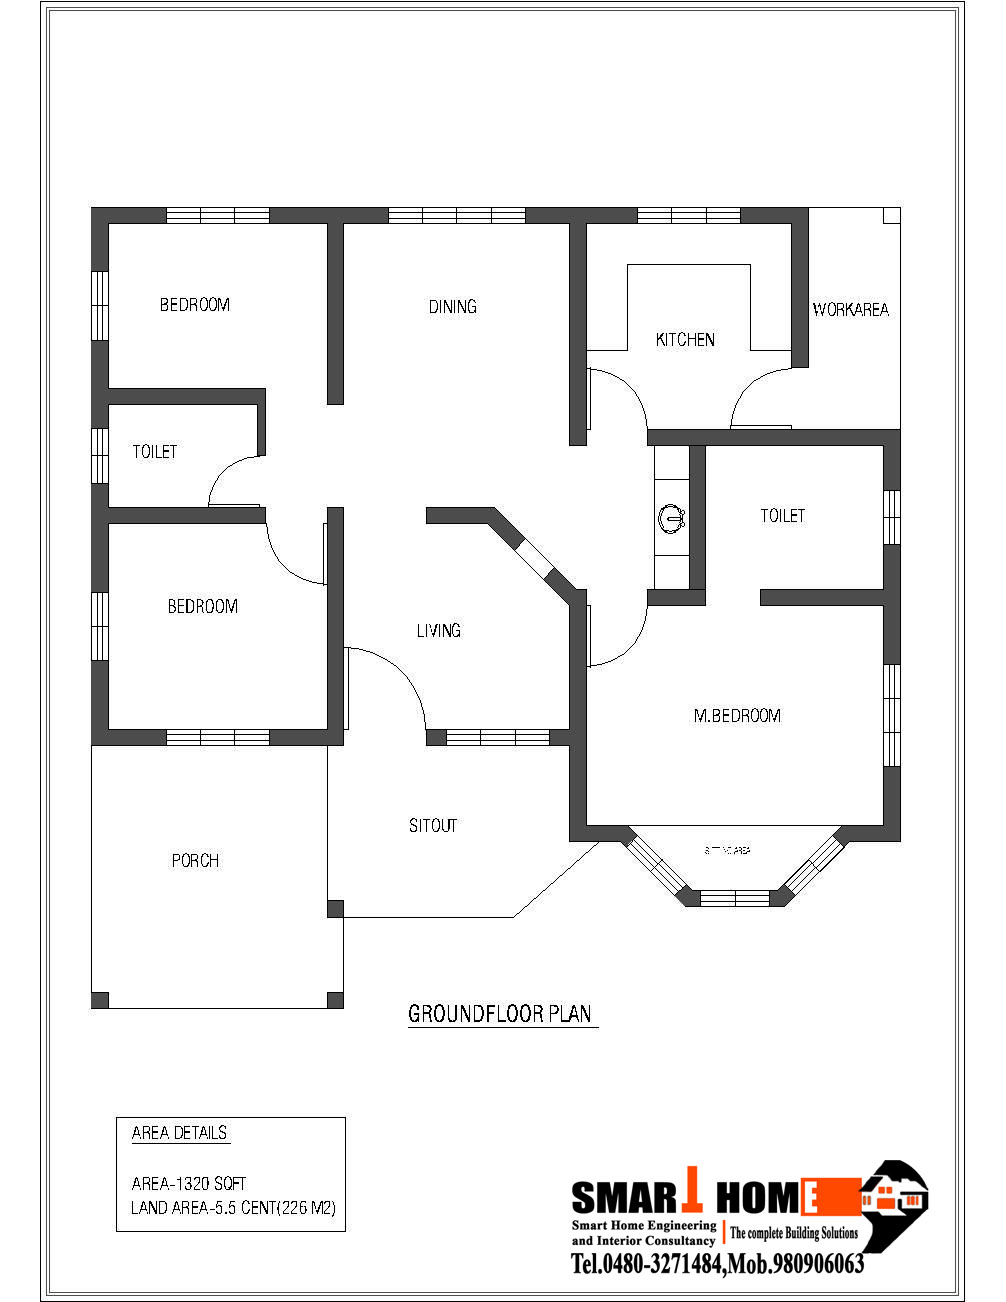 Indian House Plans in addition Wonderful 25 X 50 House Plans Planskill 1550 Home Plans Image furthermore Small House Plans further 80 square meters house floor plan moreover Stylish Home Plans 1200 Sq Ft Kerala Home Design Kerala And Home On Karala 750 House Plans   Pics. on kerala house floor plans